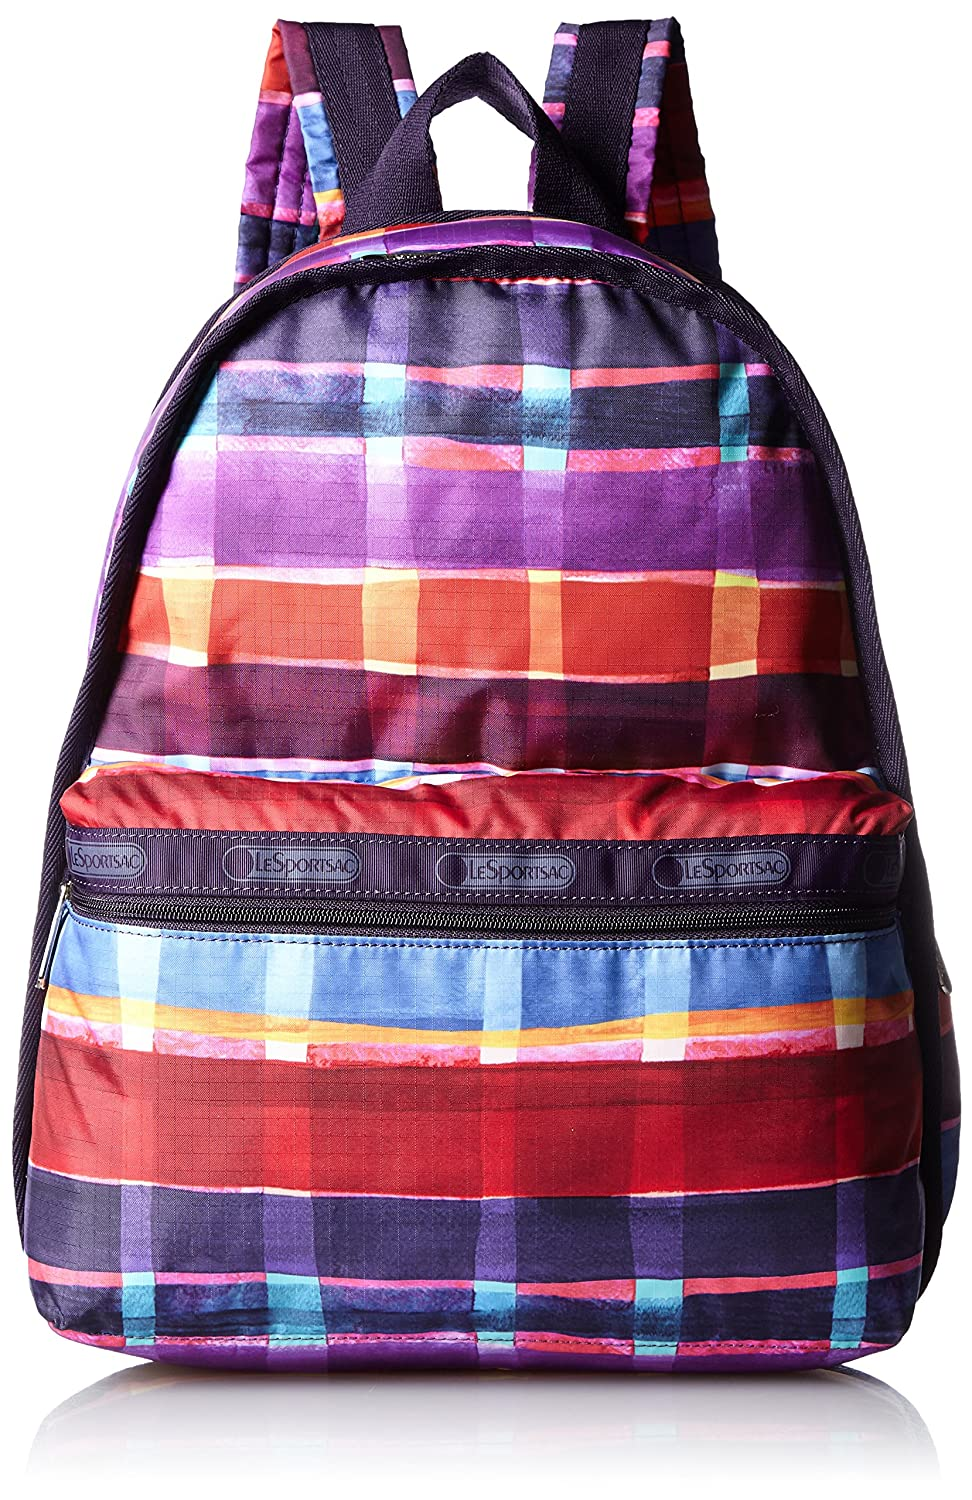 [レスポートサック] リュック (Basic Backpack),軽量 7812 [並行輸入品] B01AT2ZJ4U D533 (Painted Plaid print) D533 (Painted Plaid print)